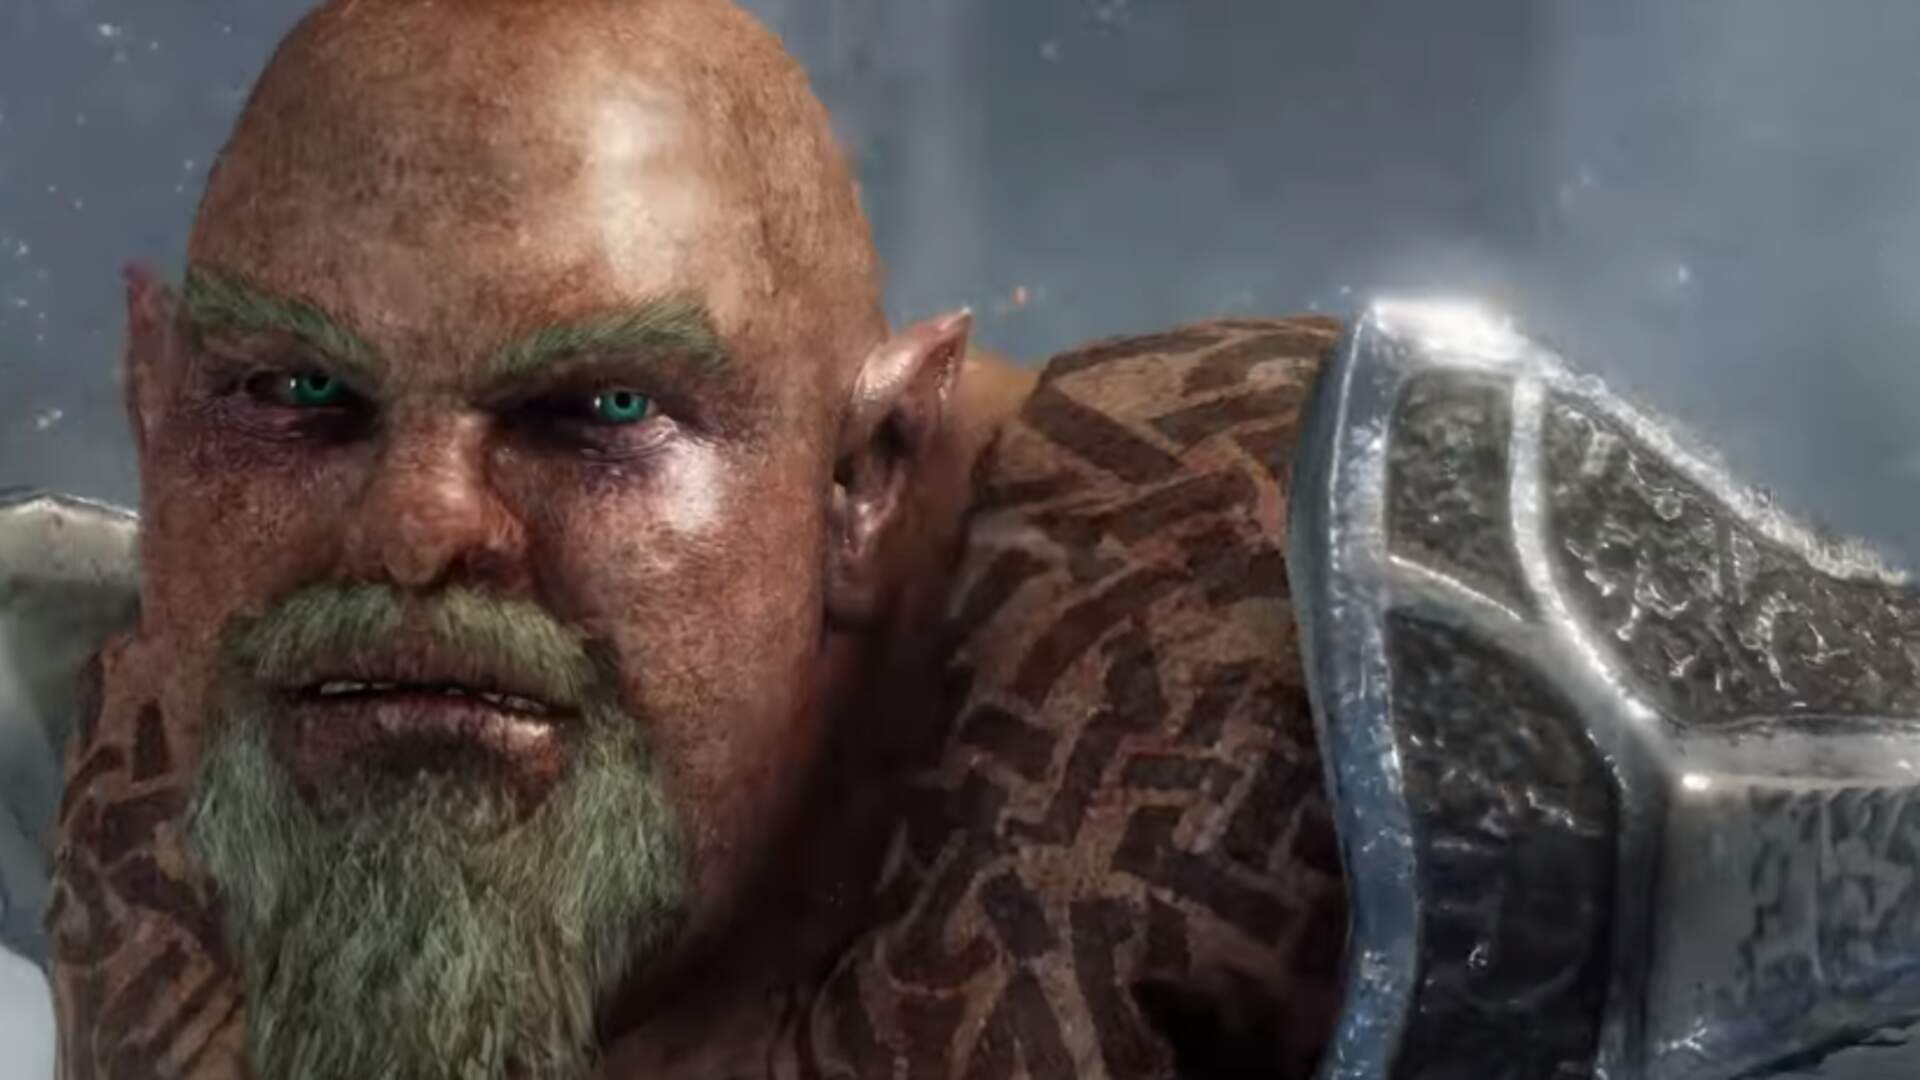 Warner Bros Issues an Apology for Confusion Regarding Forthog DLC